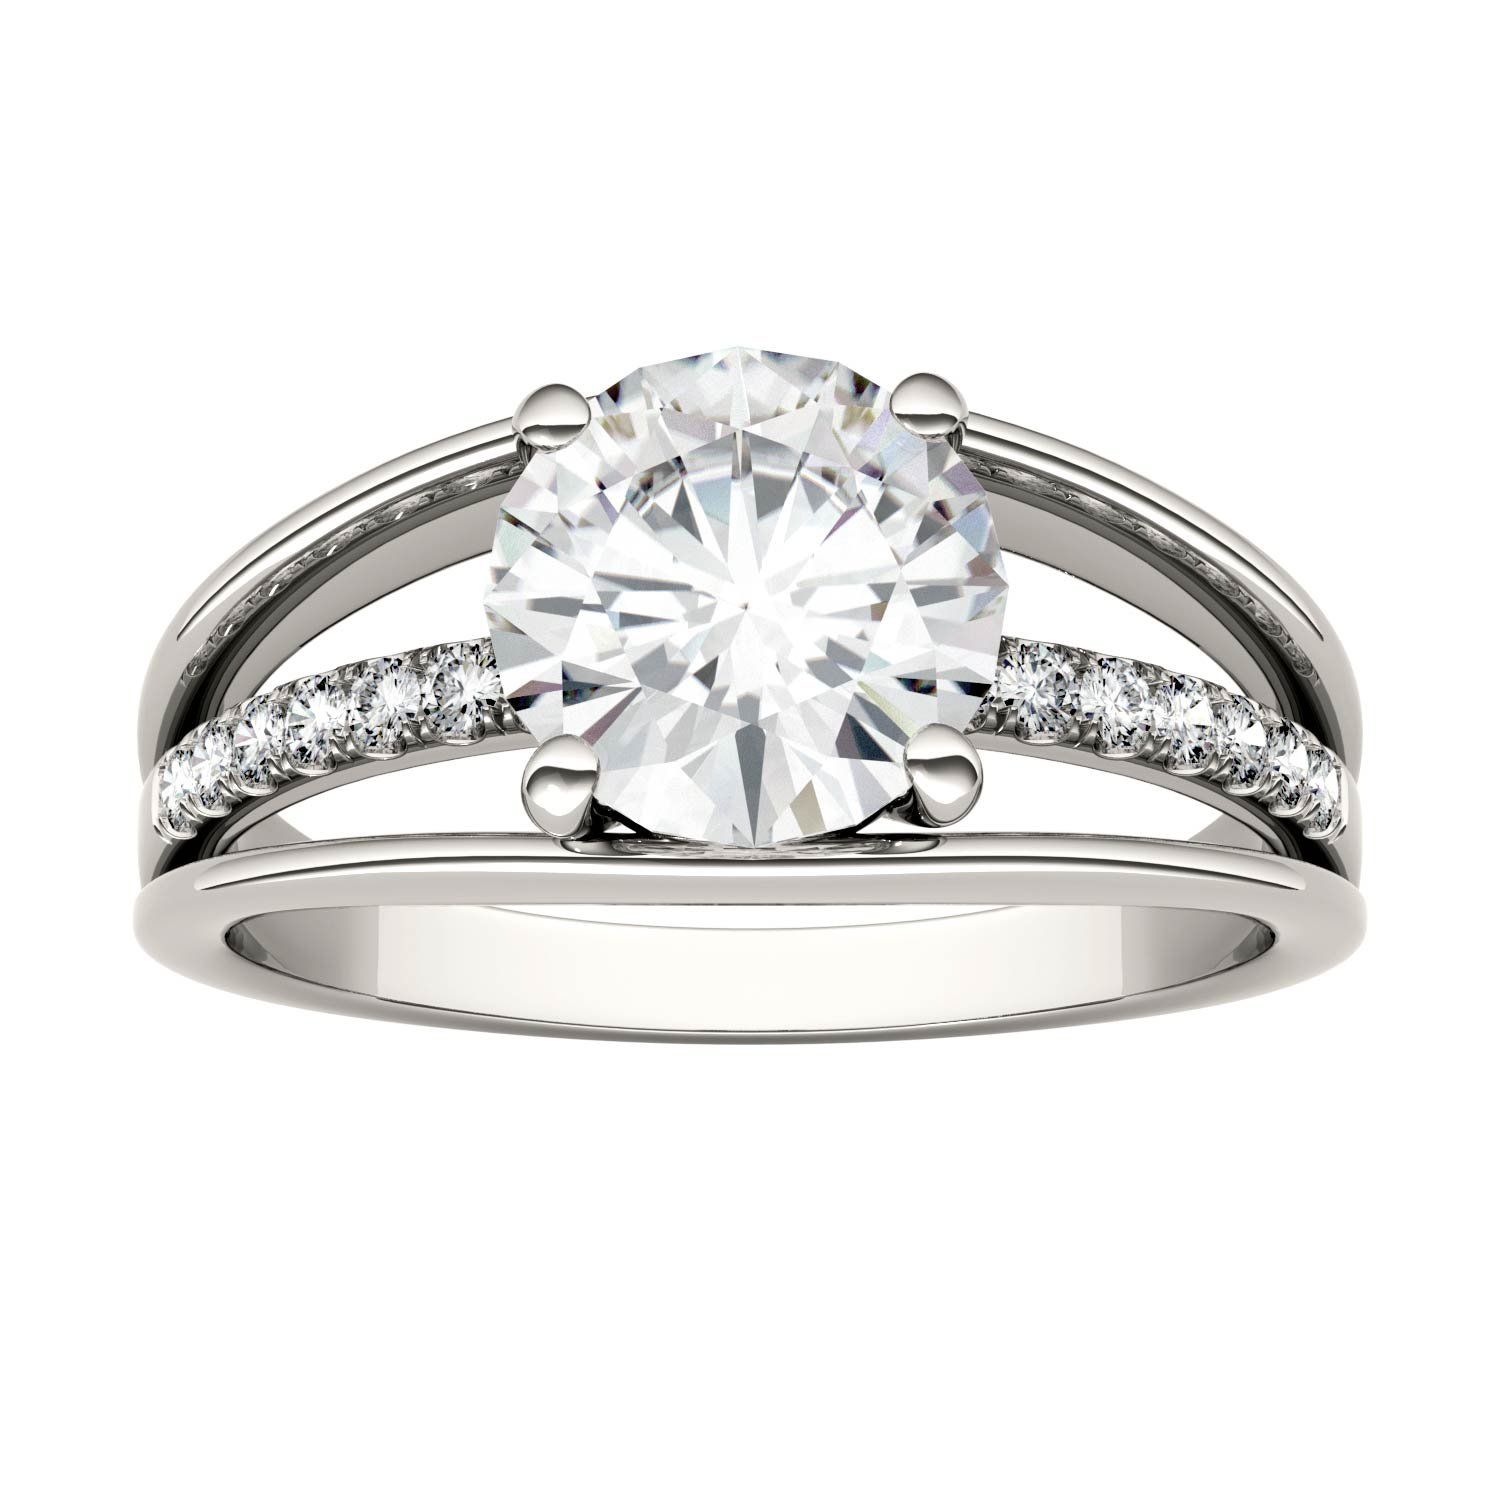 Forever Brilliant Round 8.0mm Moissanite Ring-size 8, 2.04cttw DEW By Charles & Colvard